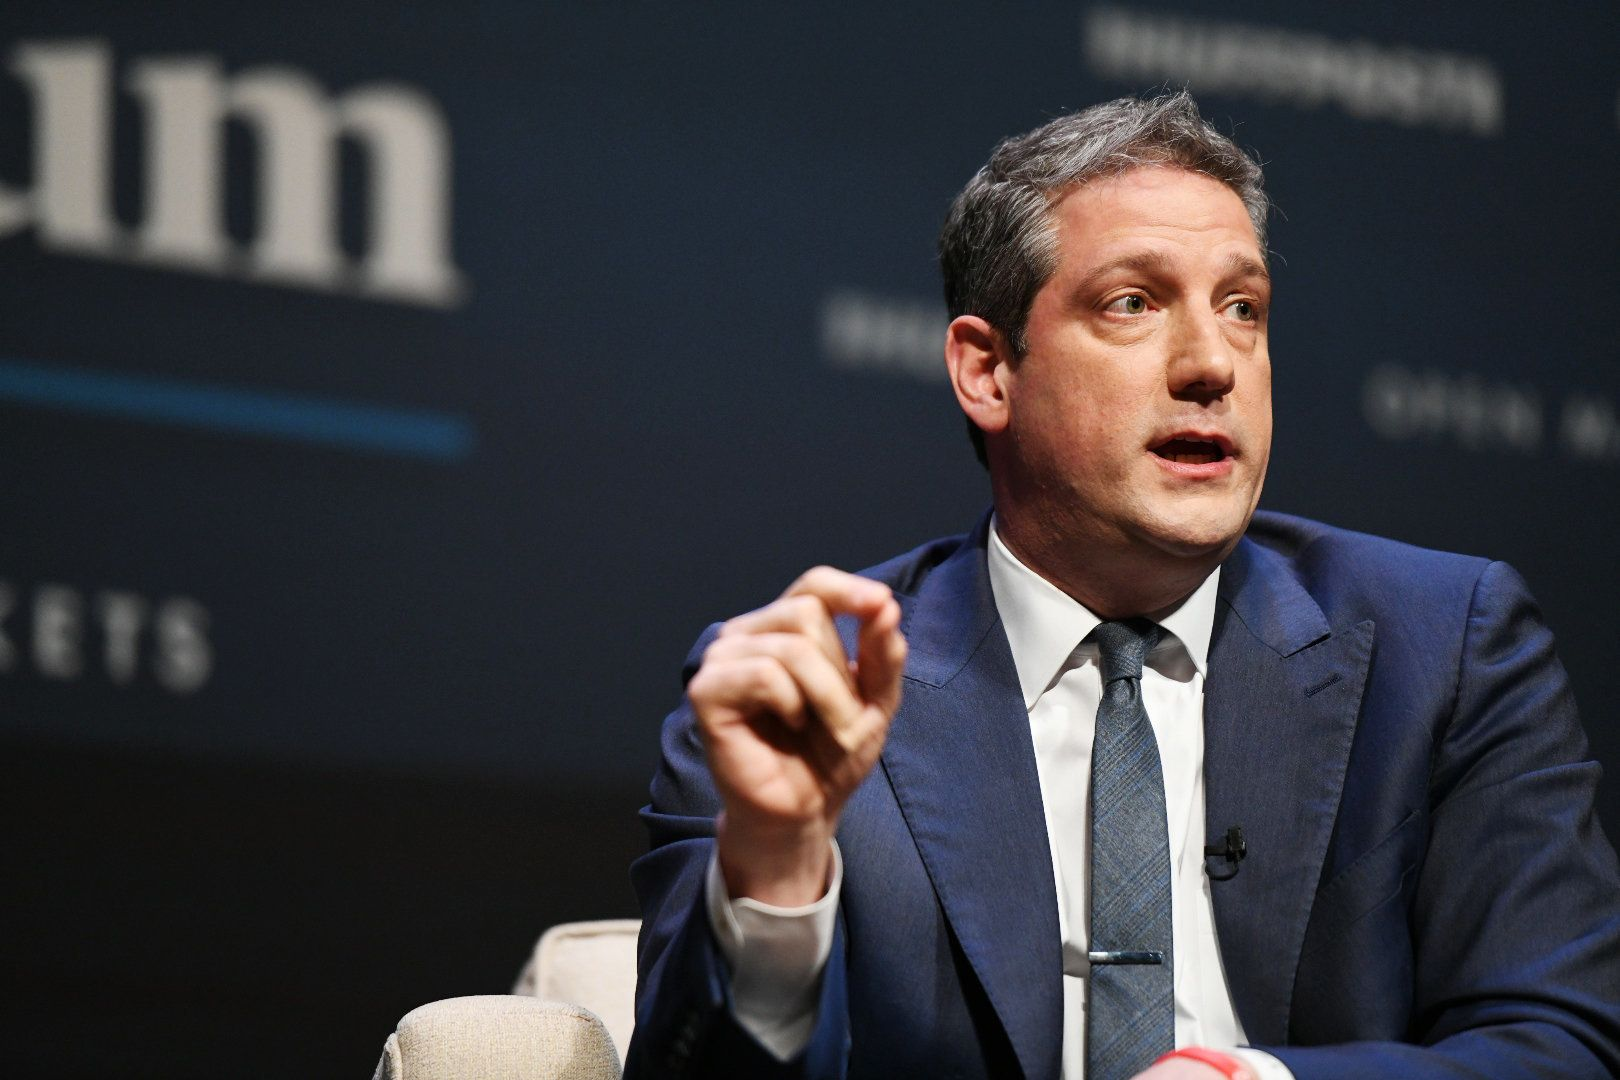 Tim Ryan takes part in the Heartland Forum.